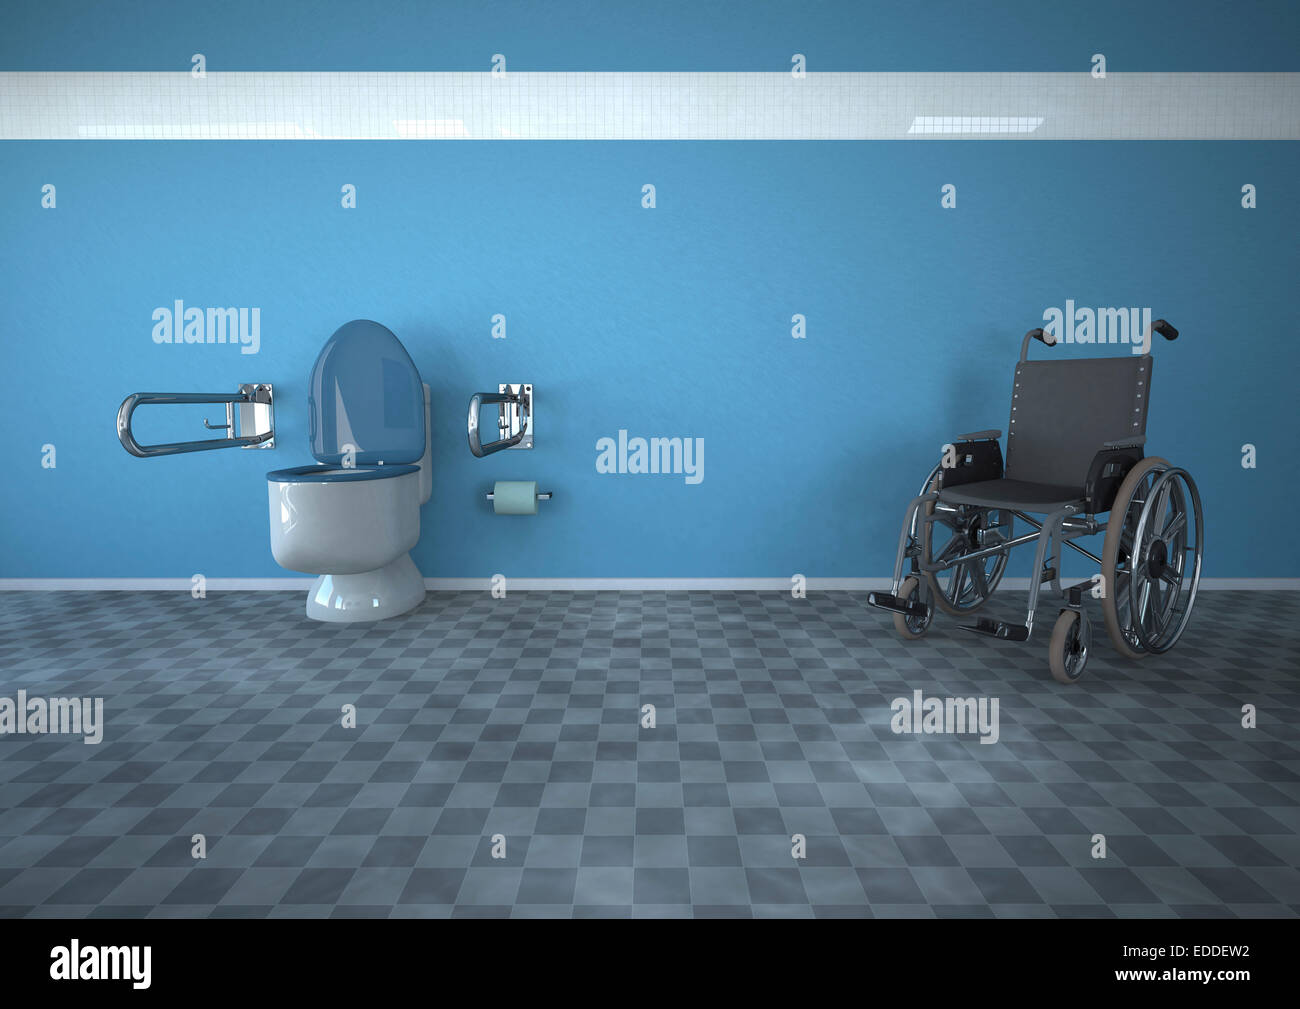 Toilet Chair Stock Photos & Toilet Chair Stock Images - Alamy